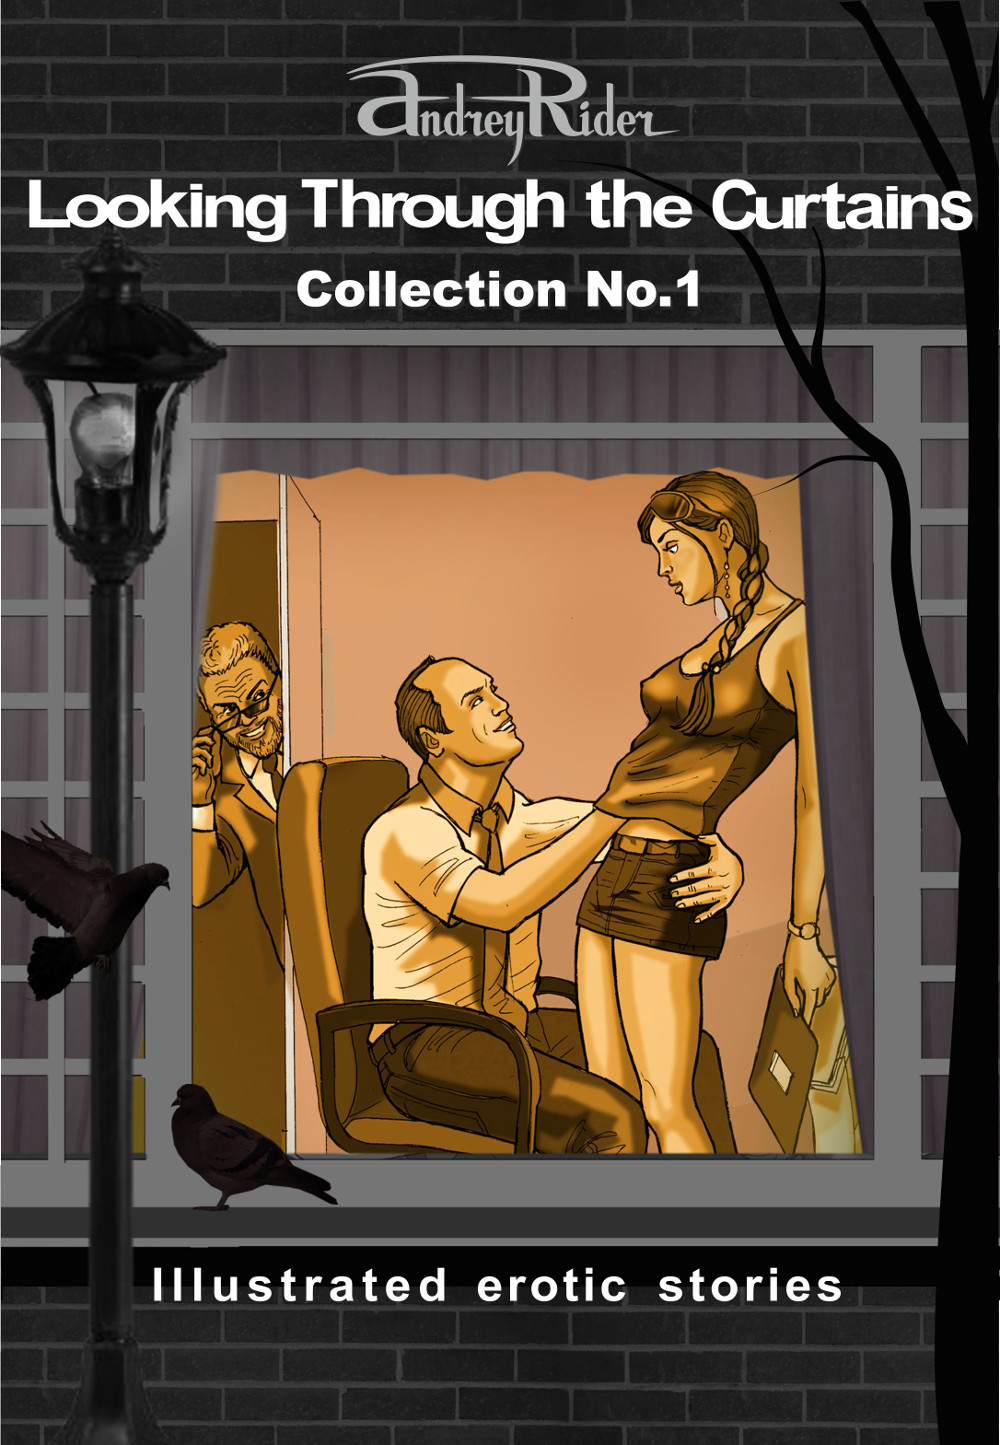 Collection of Erotic Stories No.1